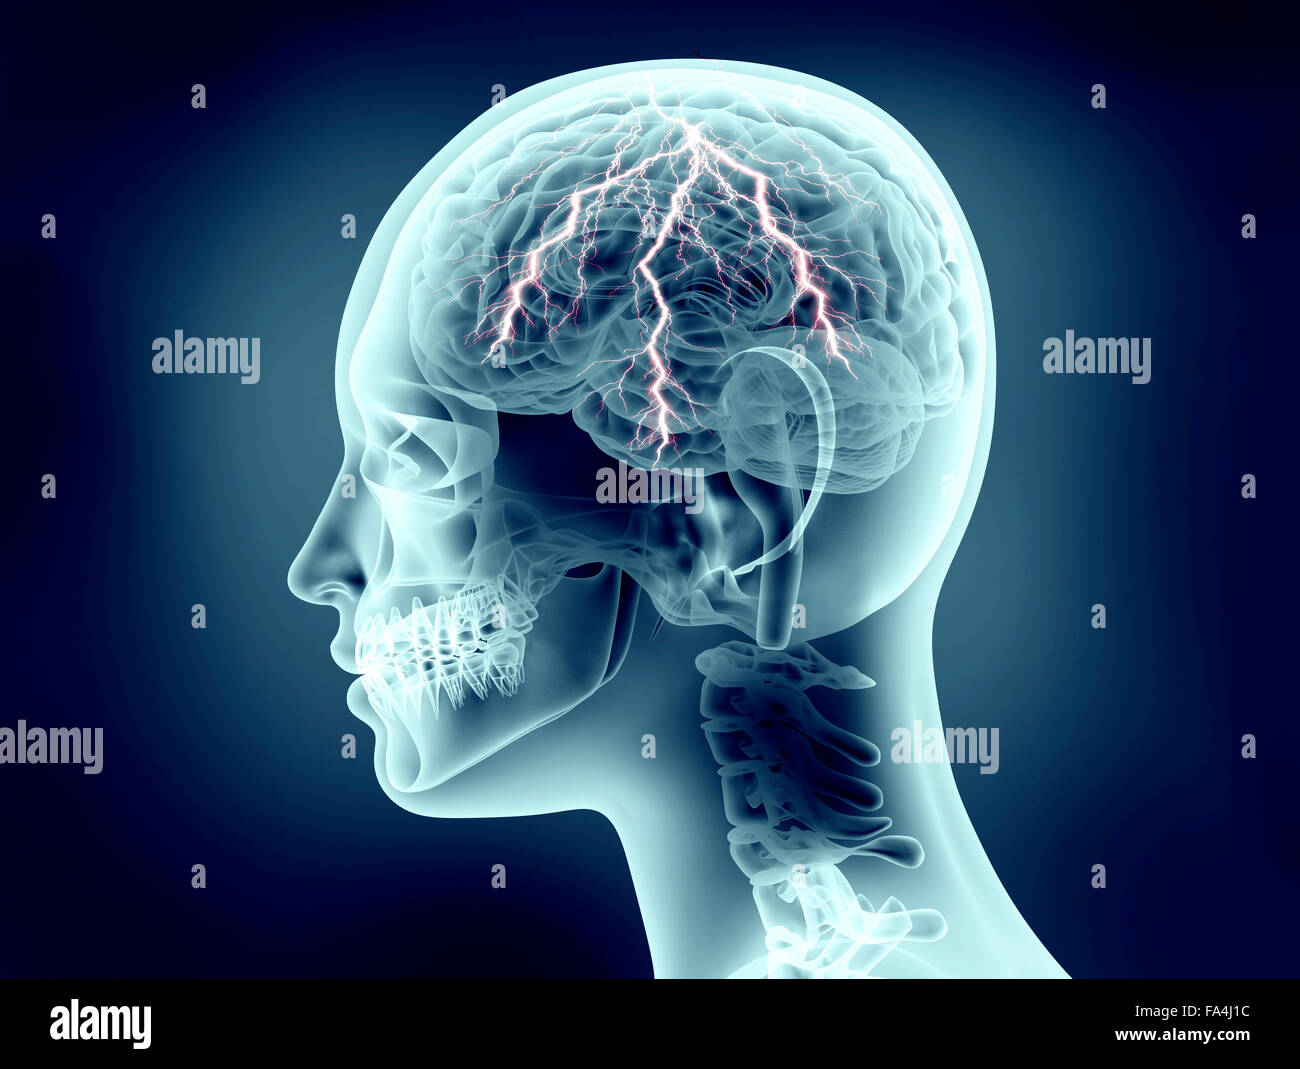 x-ray image of human head with lightning - Stock Image